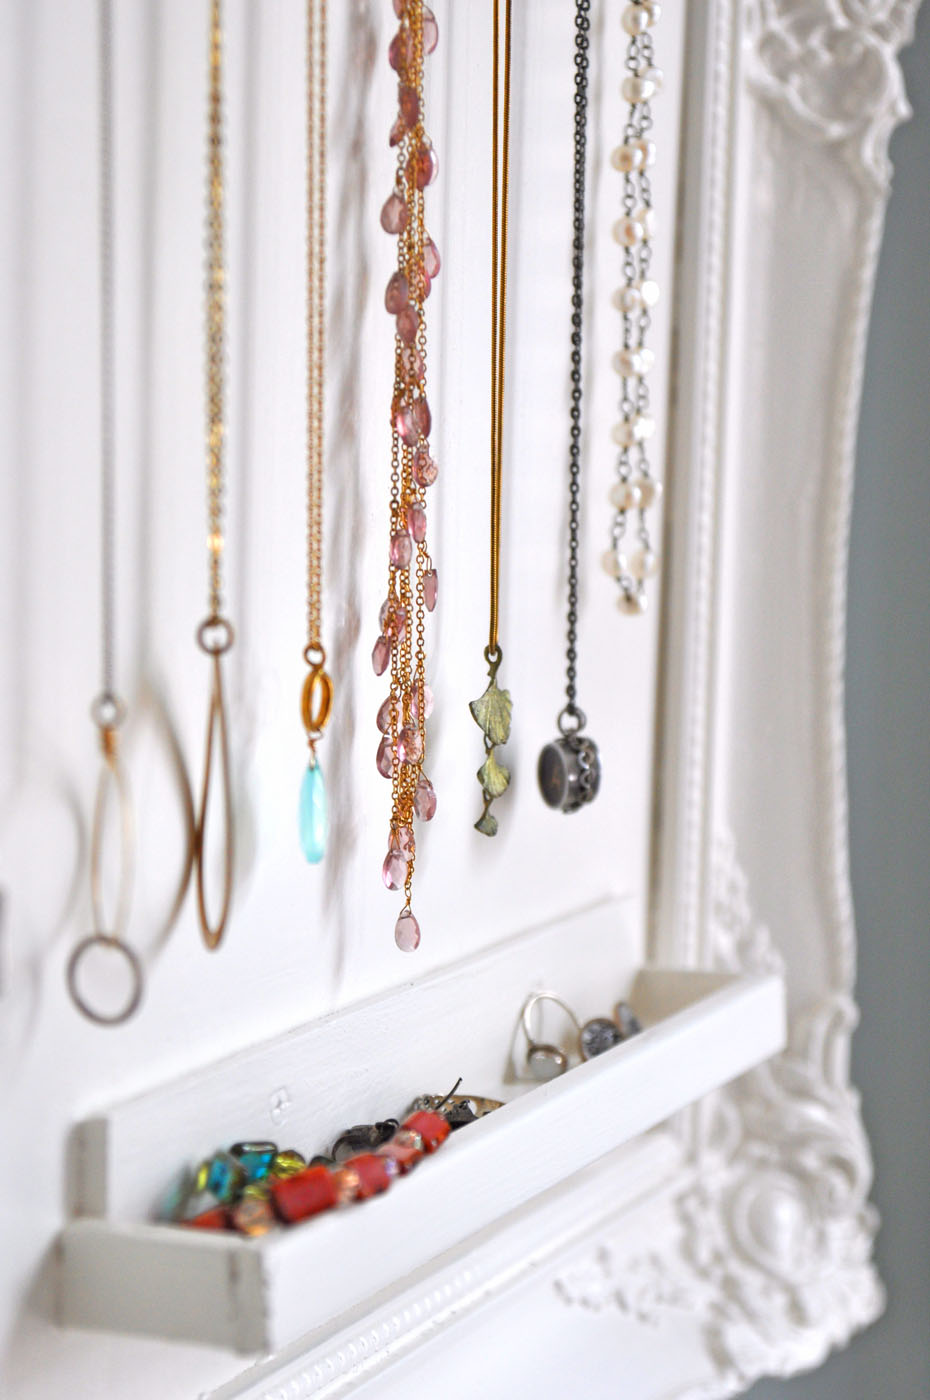 Do it yourself jewelry storage solutioingenieria Image collections